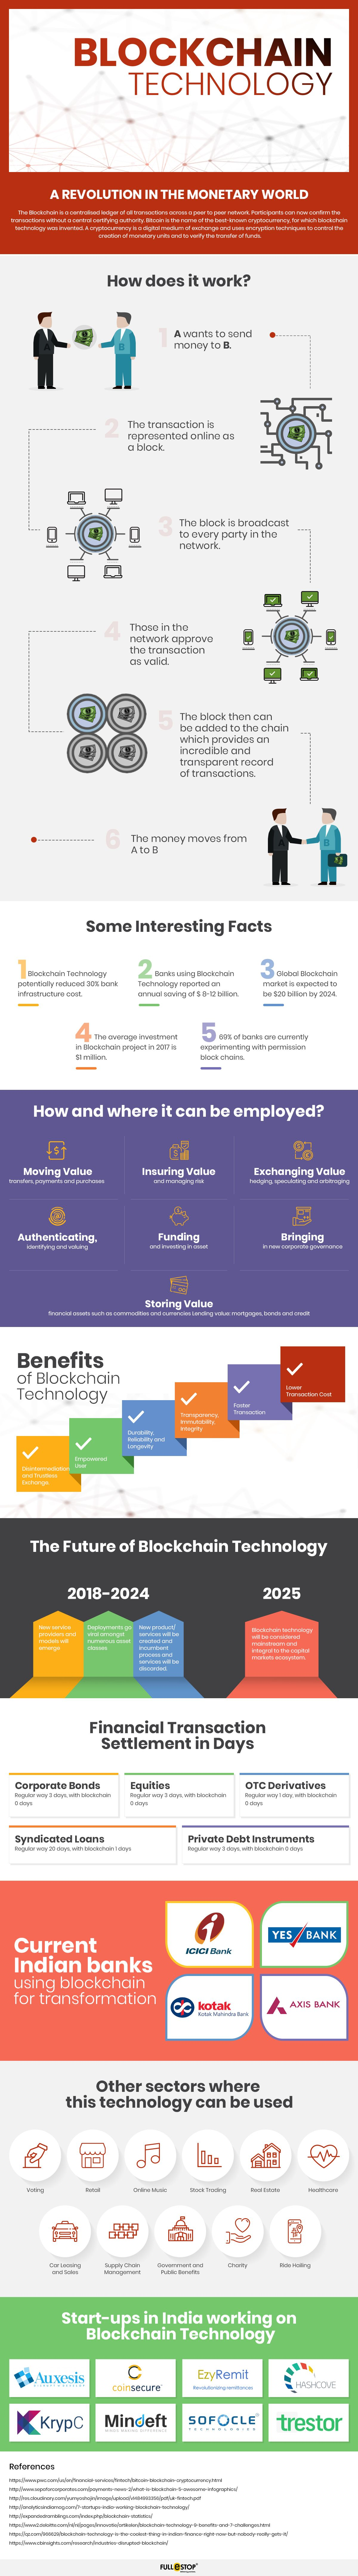 Blockchain Technology [Infographic]